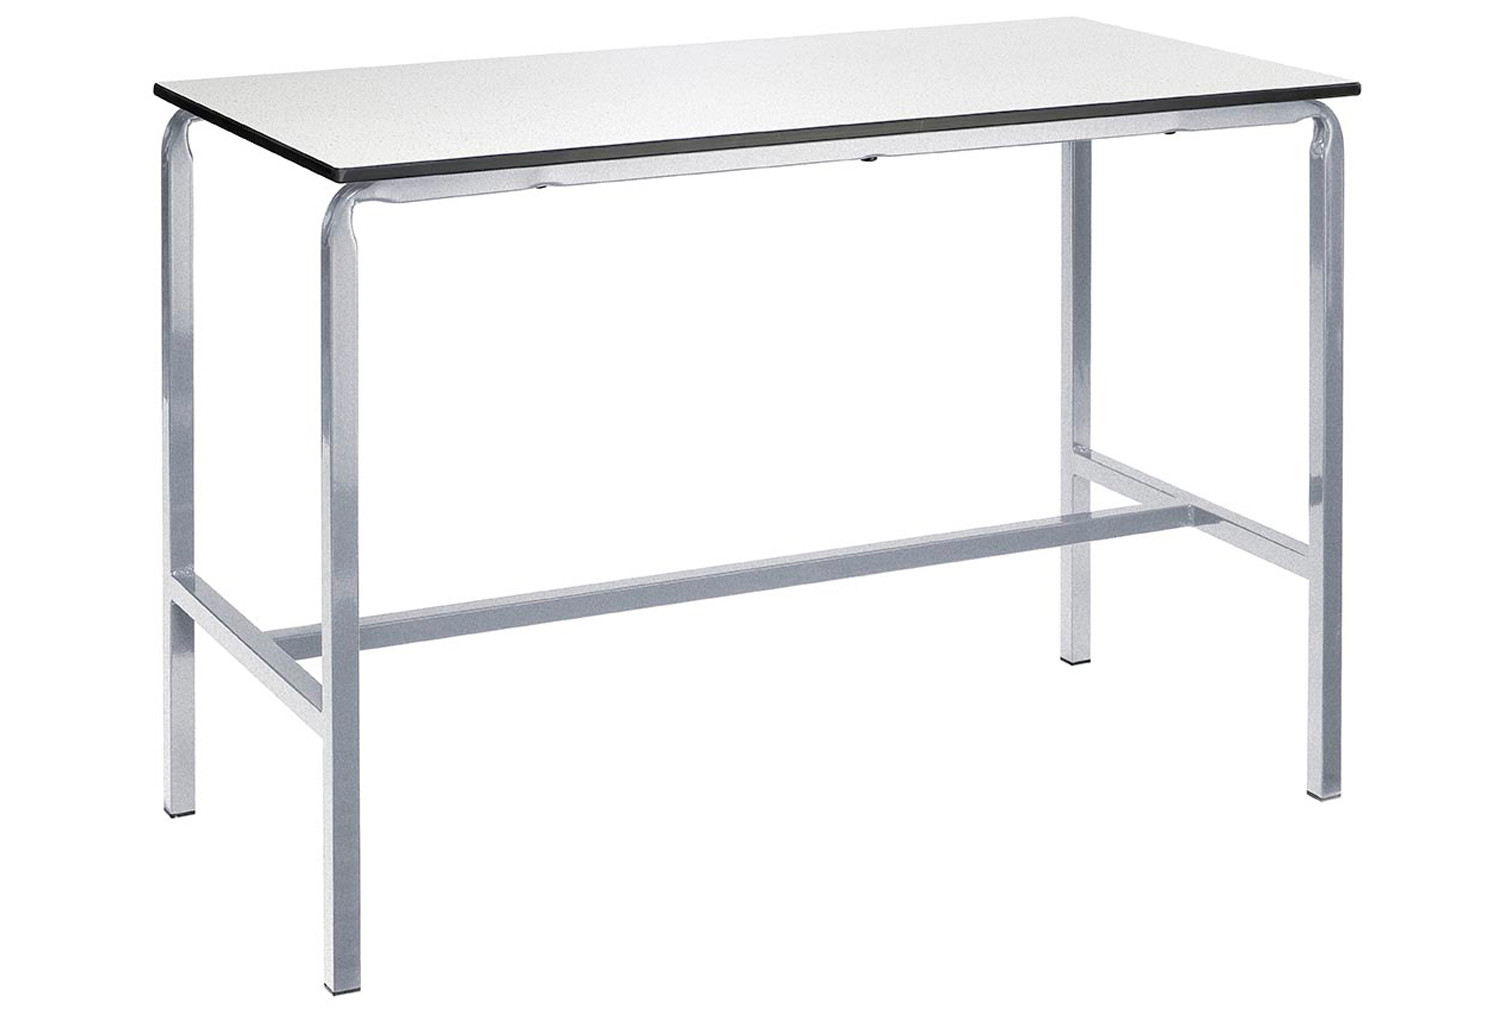 Crush bent craft table